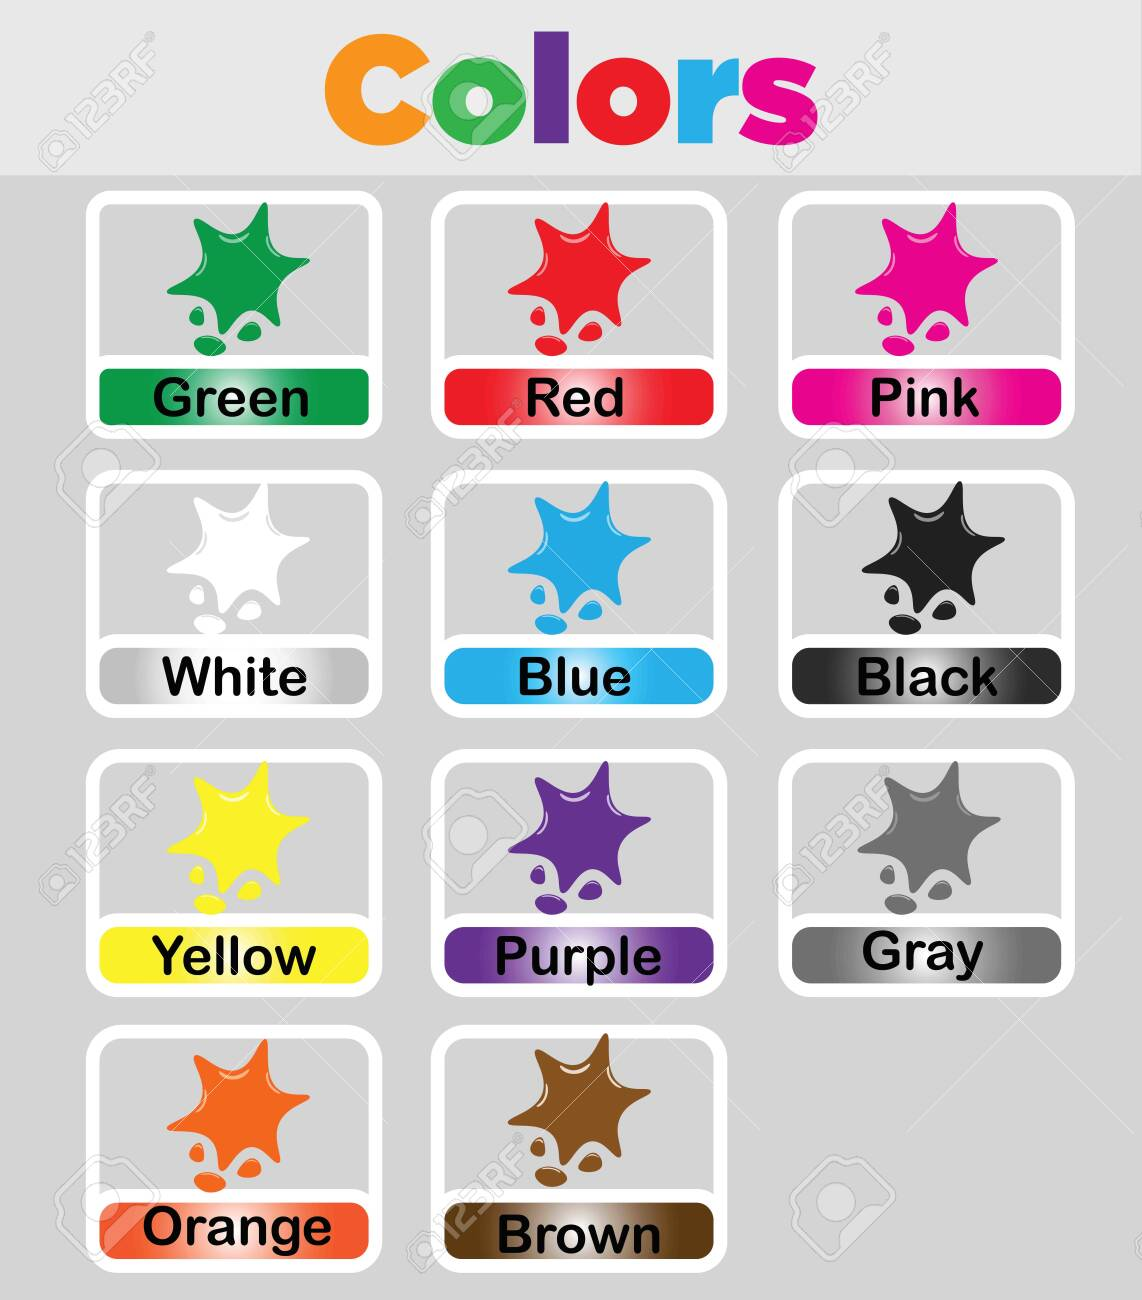 Color Flashcards Printable For Kids Color Vocabulary Cards Royalty Free Cliparts Vectors And Stock Illustration Image 132506181